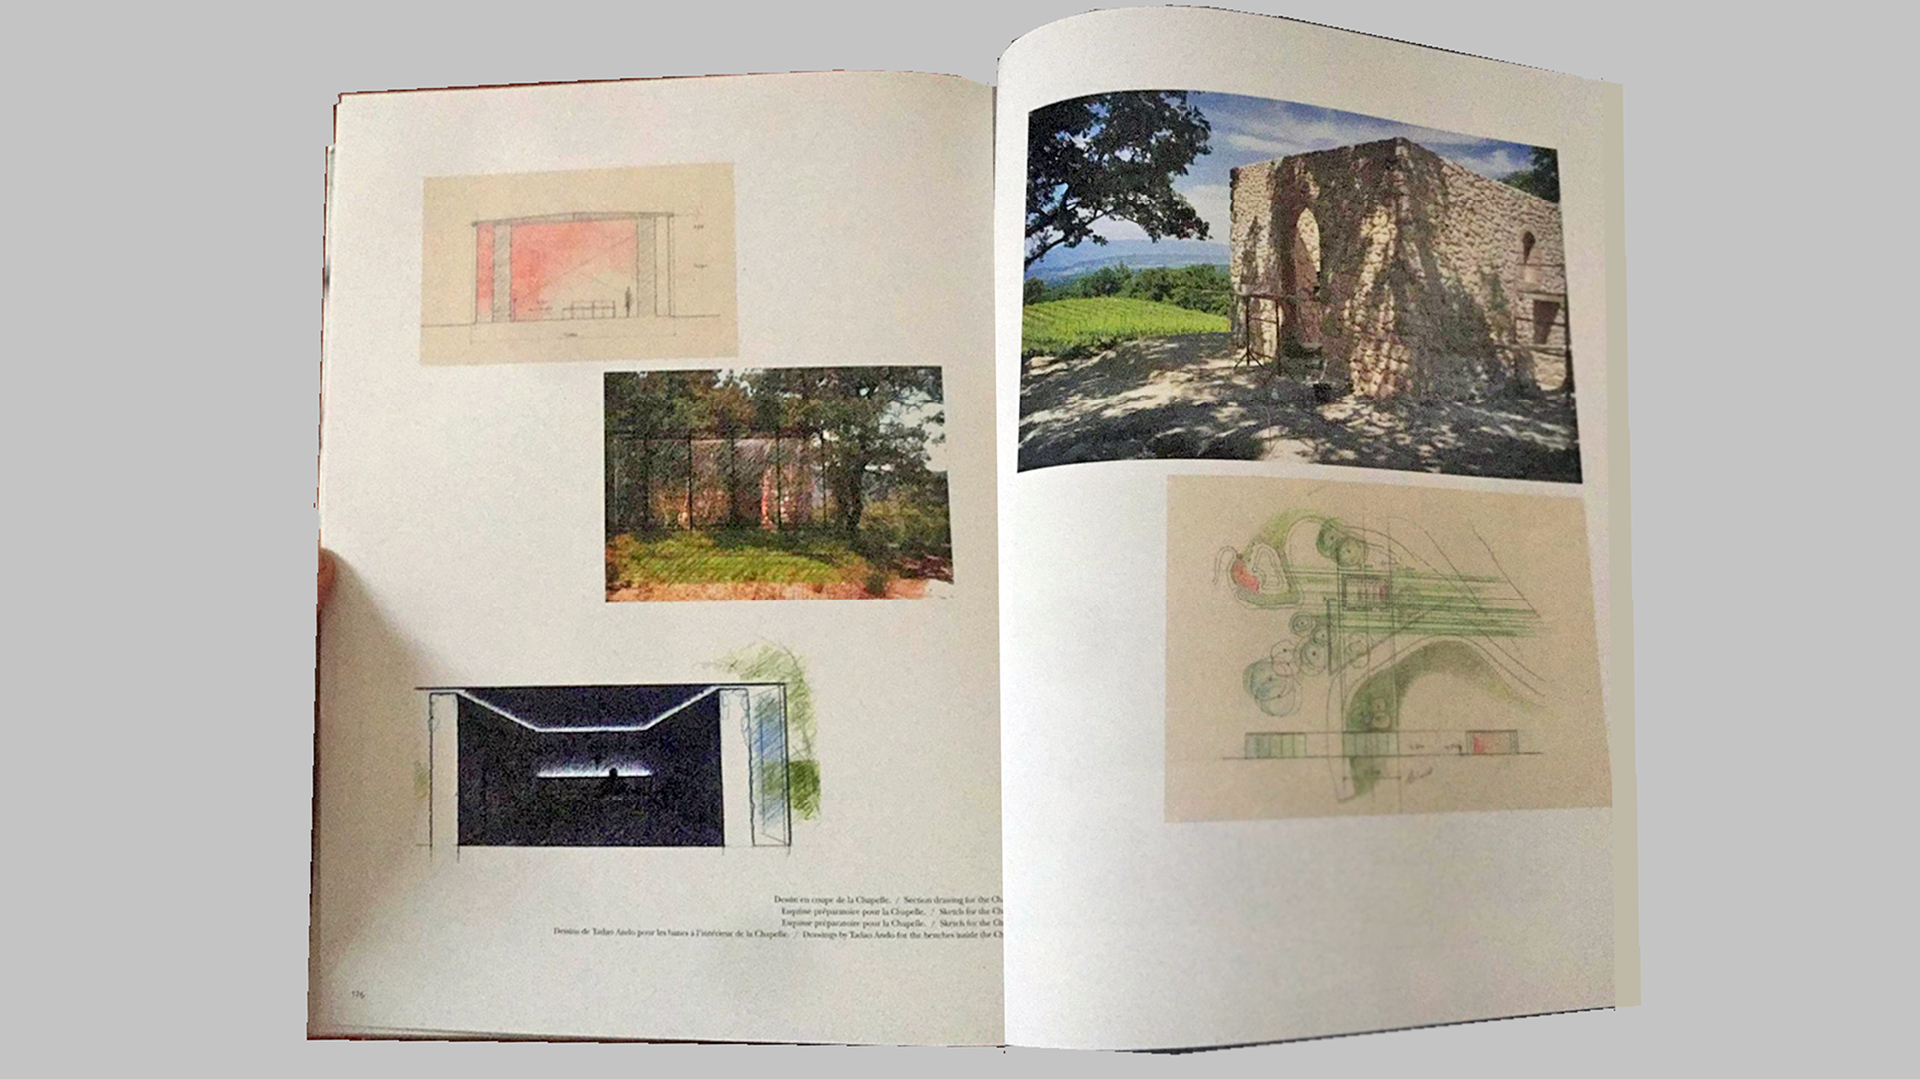 Illustrations from the book <i>Tadao Ando: Château La Coste</i> by Philip Jodidio